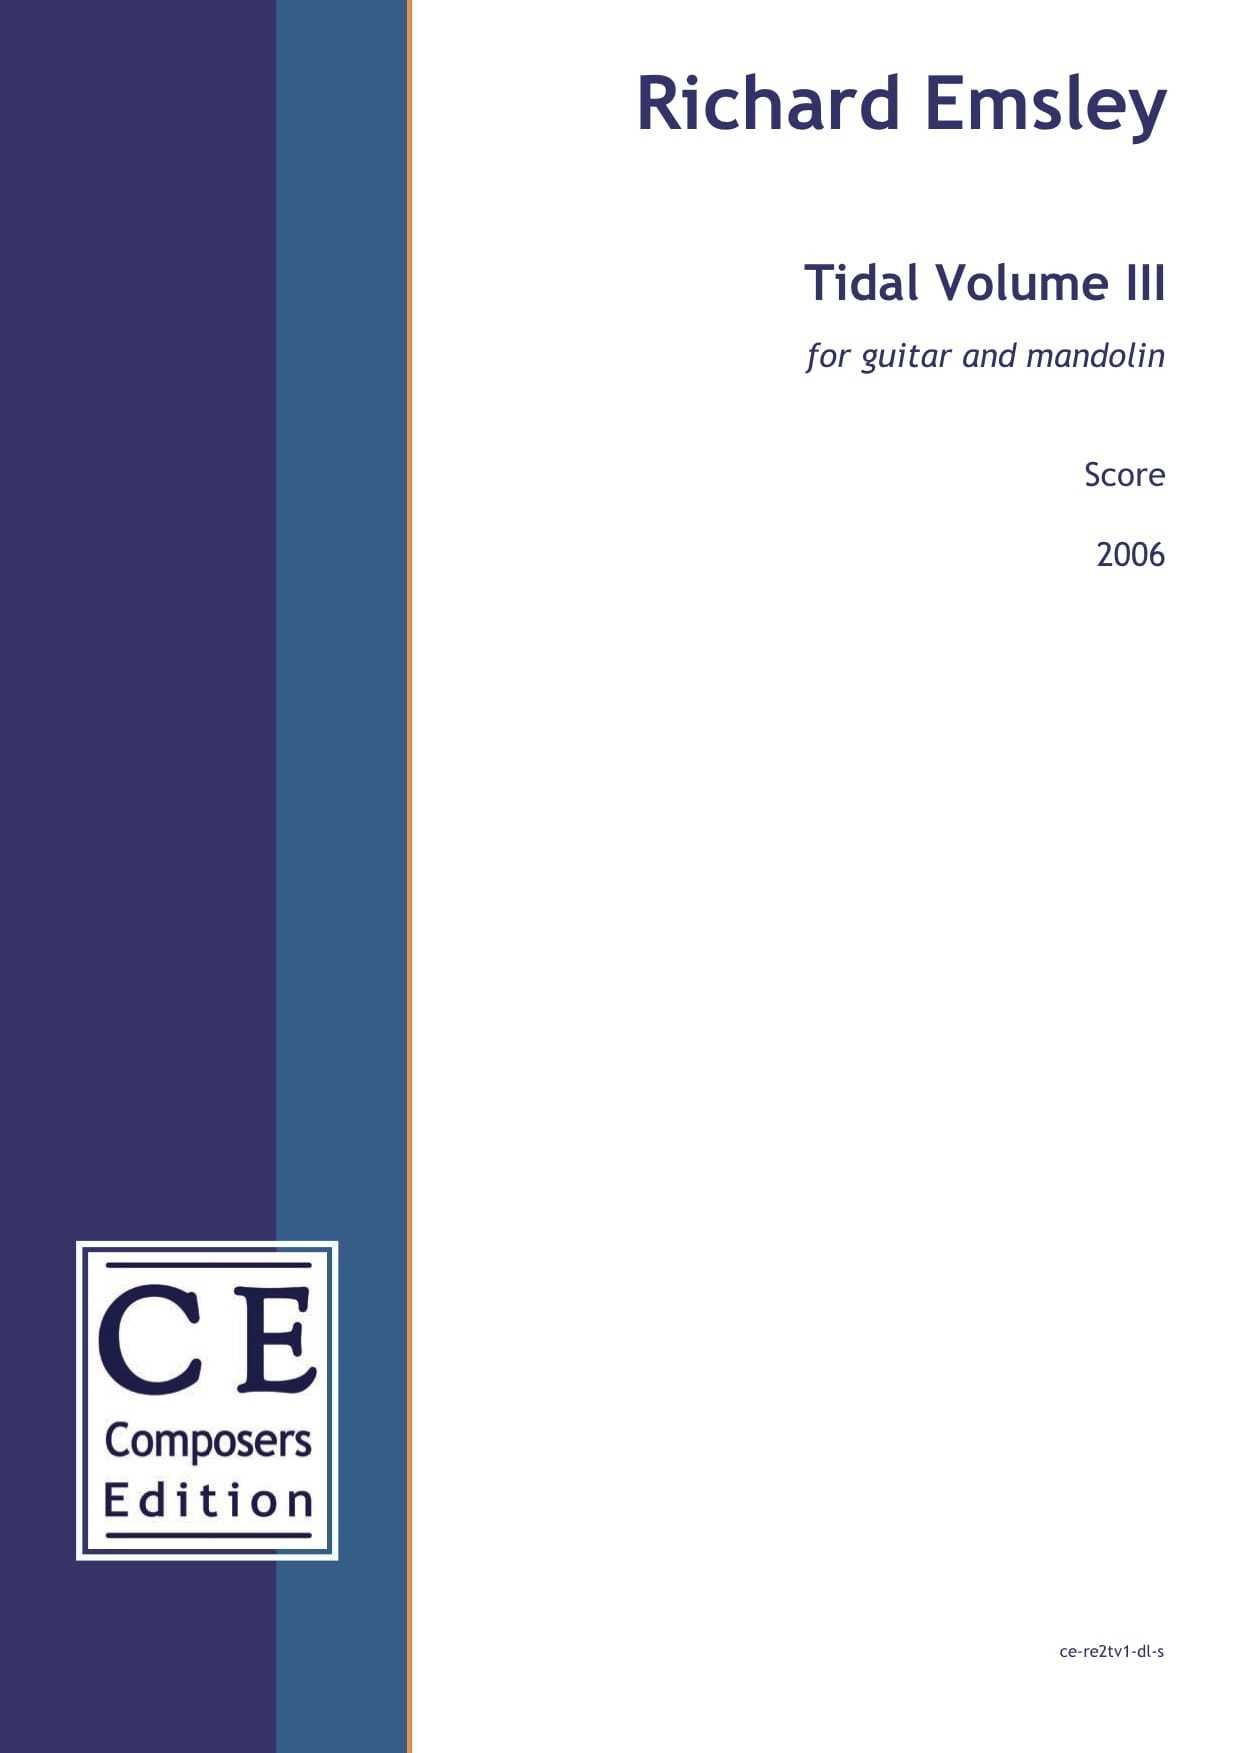 Richard Emsley: Tidal Volume III for guitar and mandolin